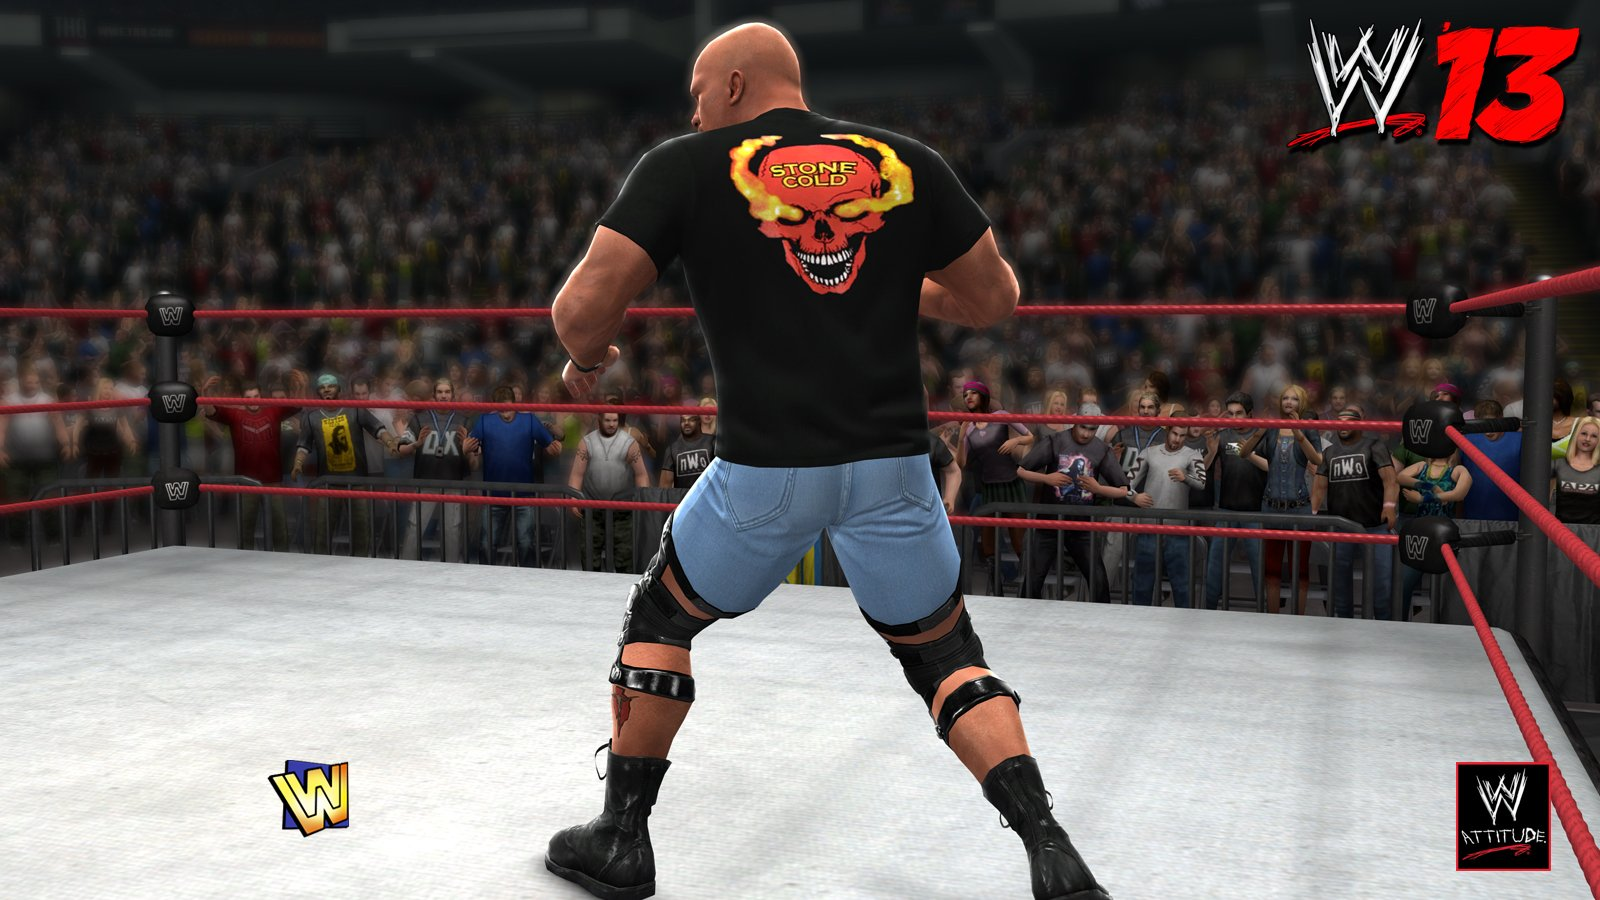 download wwe 13 pc game iso